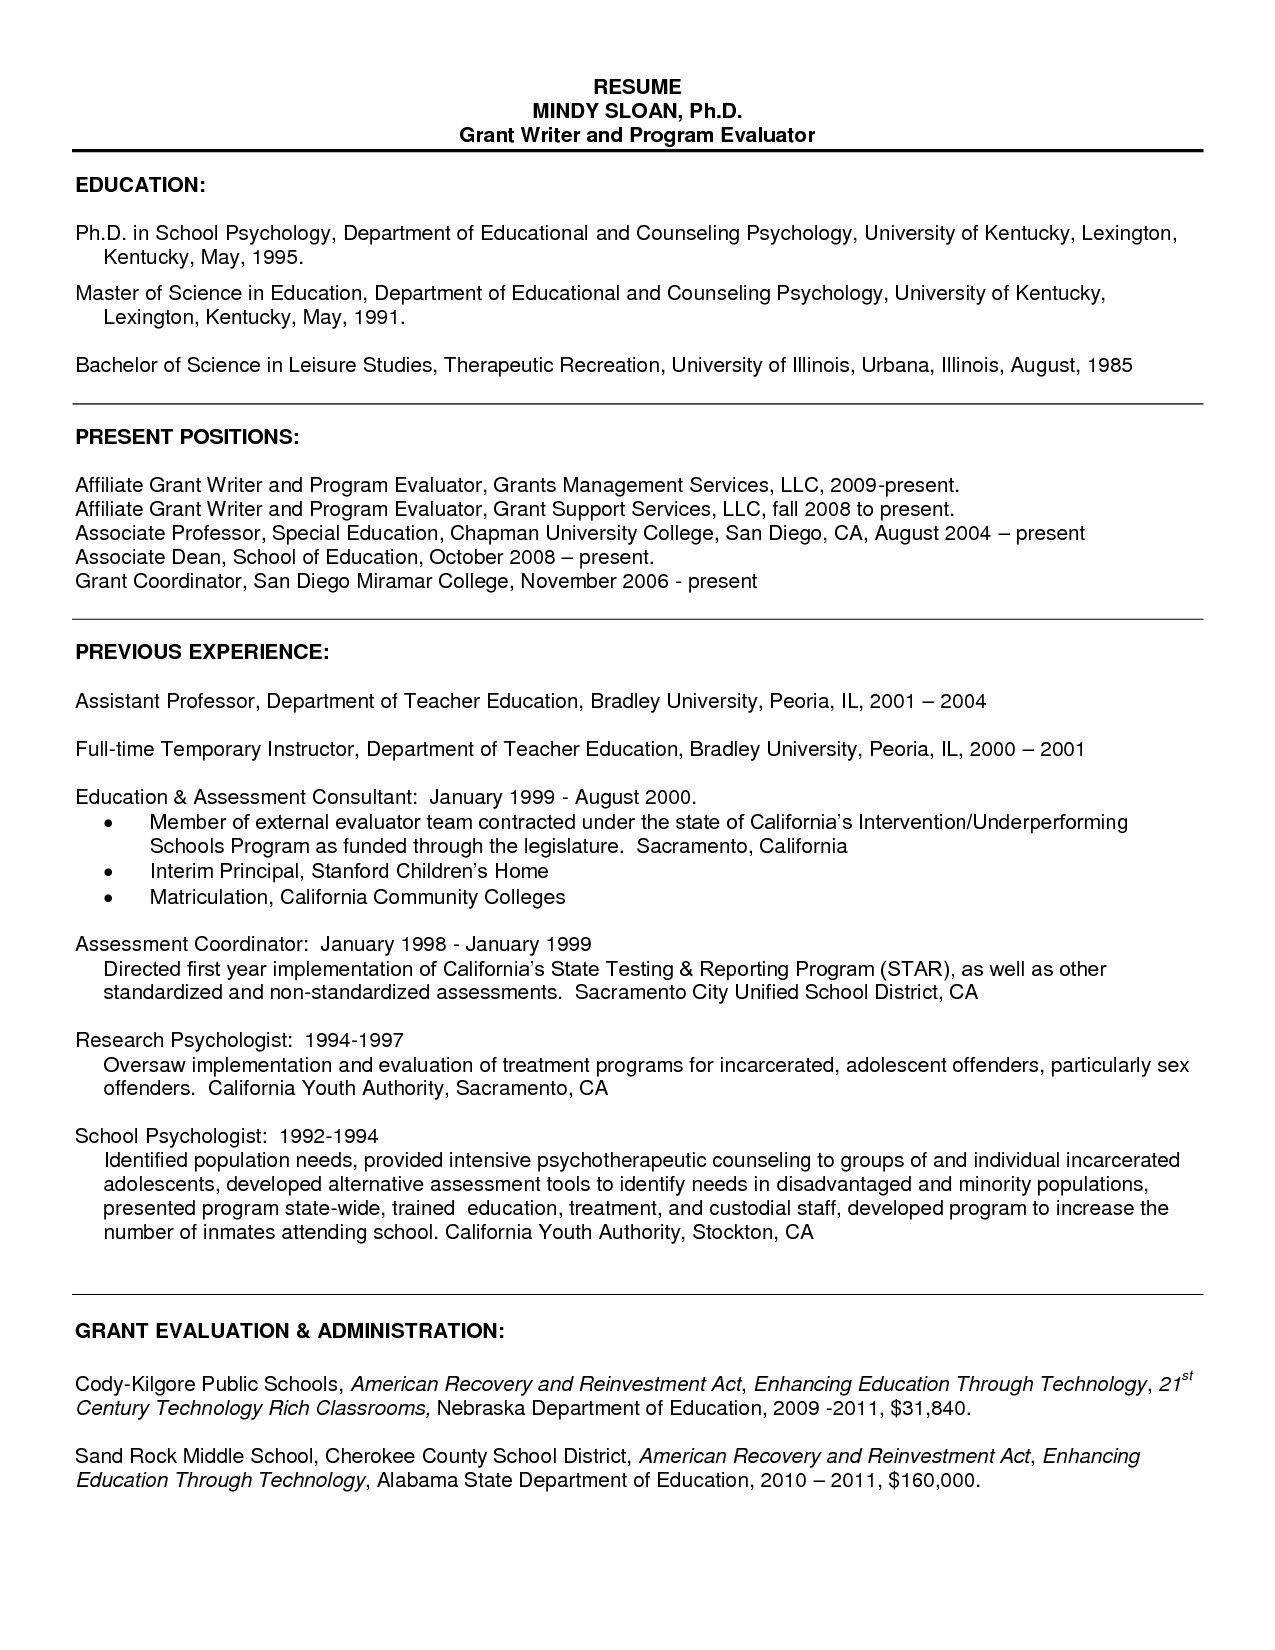 Resume Sample For Psychology Graduate Resume For Graduate School